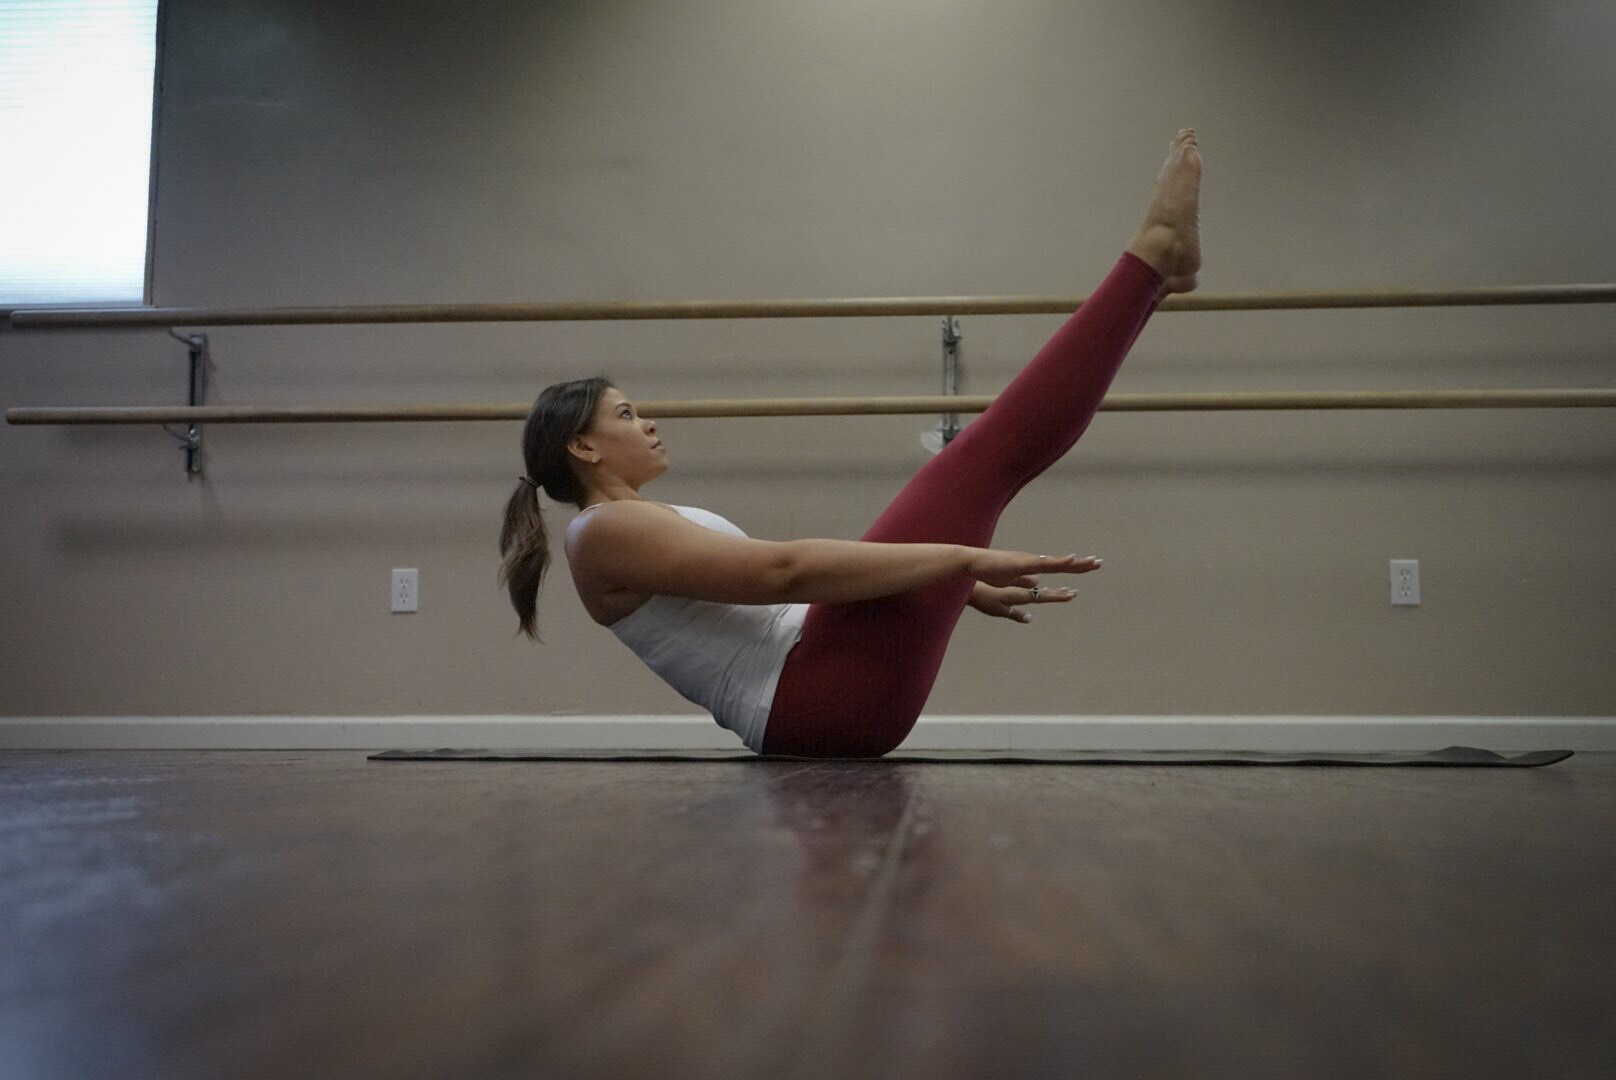 PASSIONATE ABOUT HOT PILATES